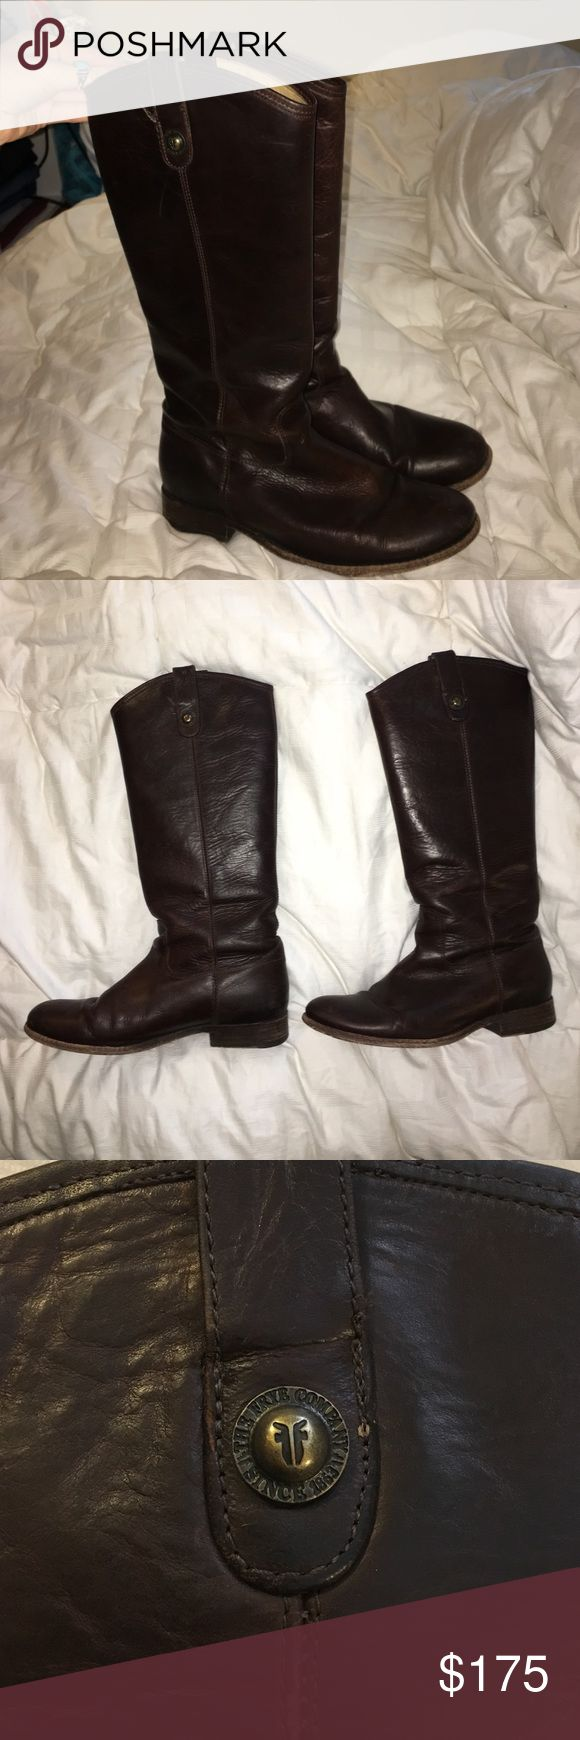 100% Authentic Frye Melissa Boots! Worn but still in awesome condition!!! These boots last forever, just don't wear them enough anymore. 100% authentic but I do not have the box anymore because i don't have the space at college. Frye Shoes Heeled Boots